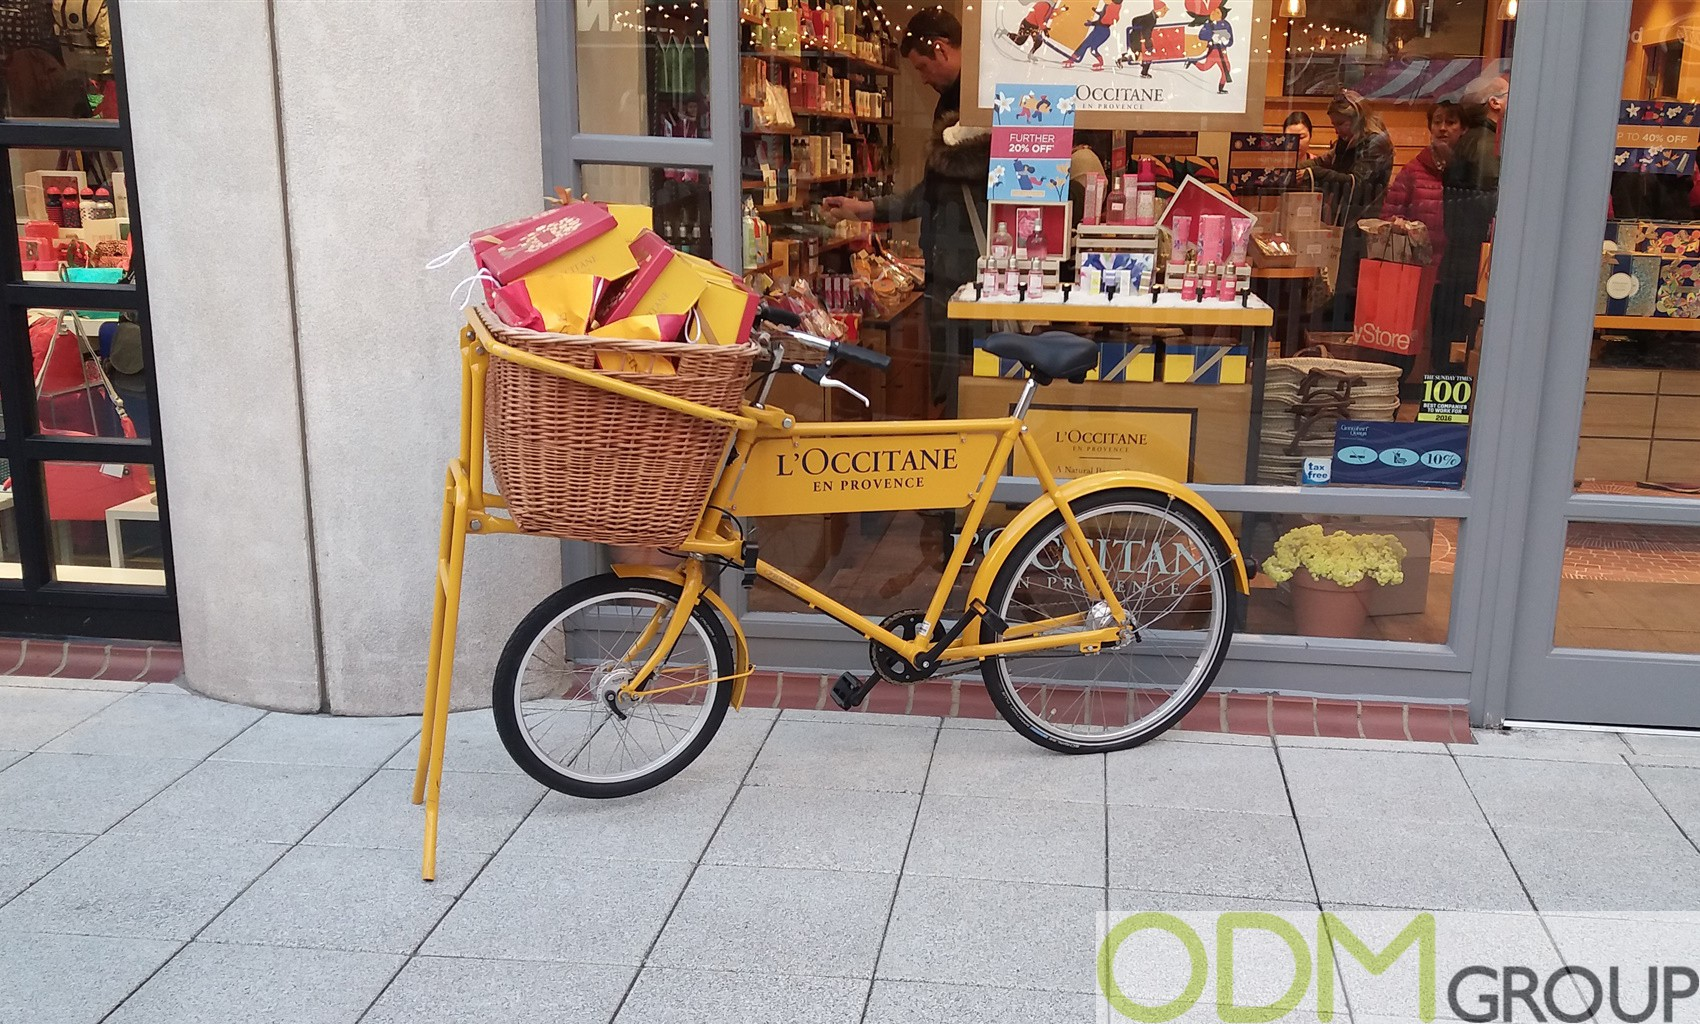 Bicycle POS Display – L'Occitane Promotional Strategy